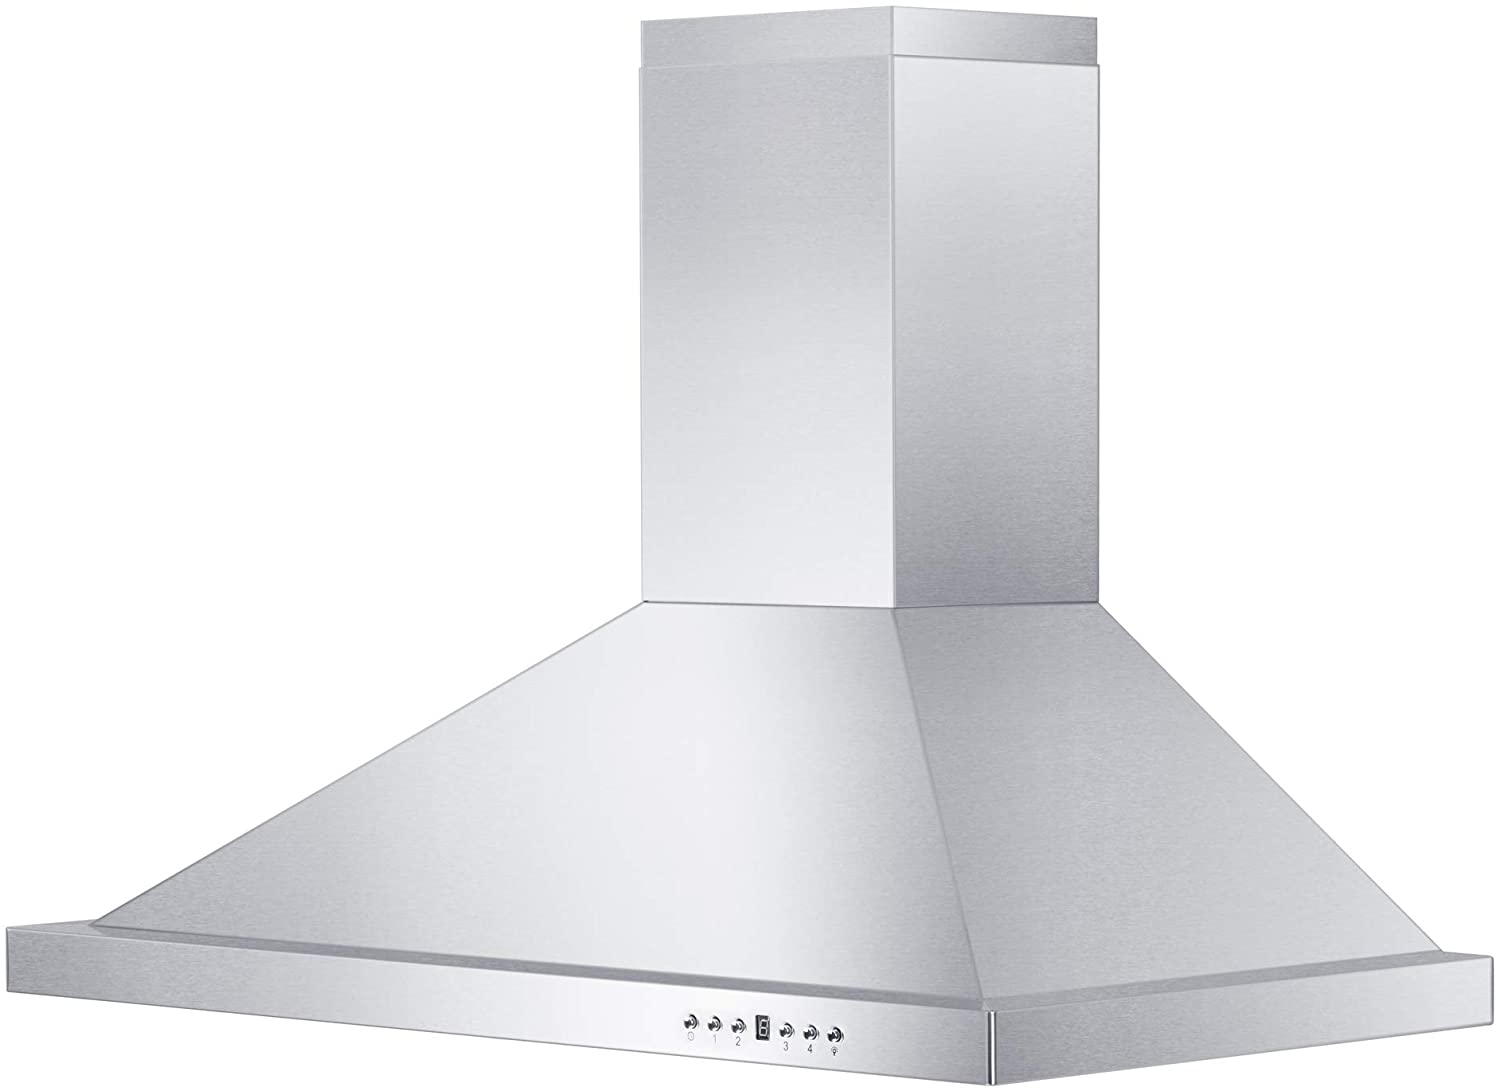 ZLINE KB-304-36 Range Hood, 36 in, Stainless Steel